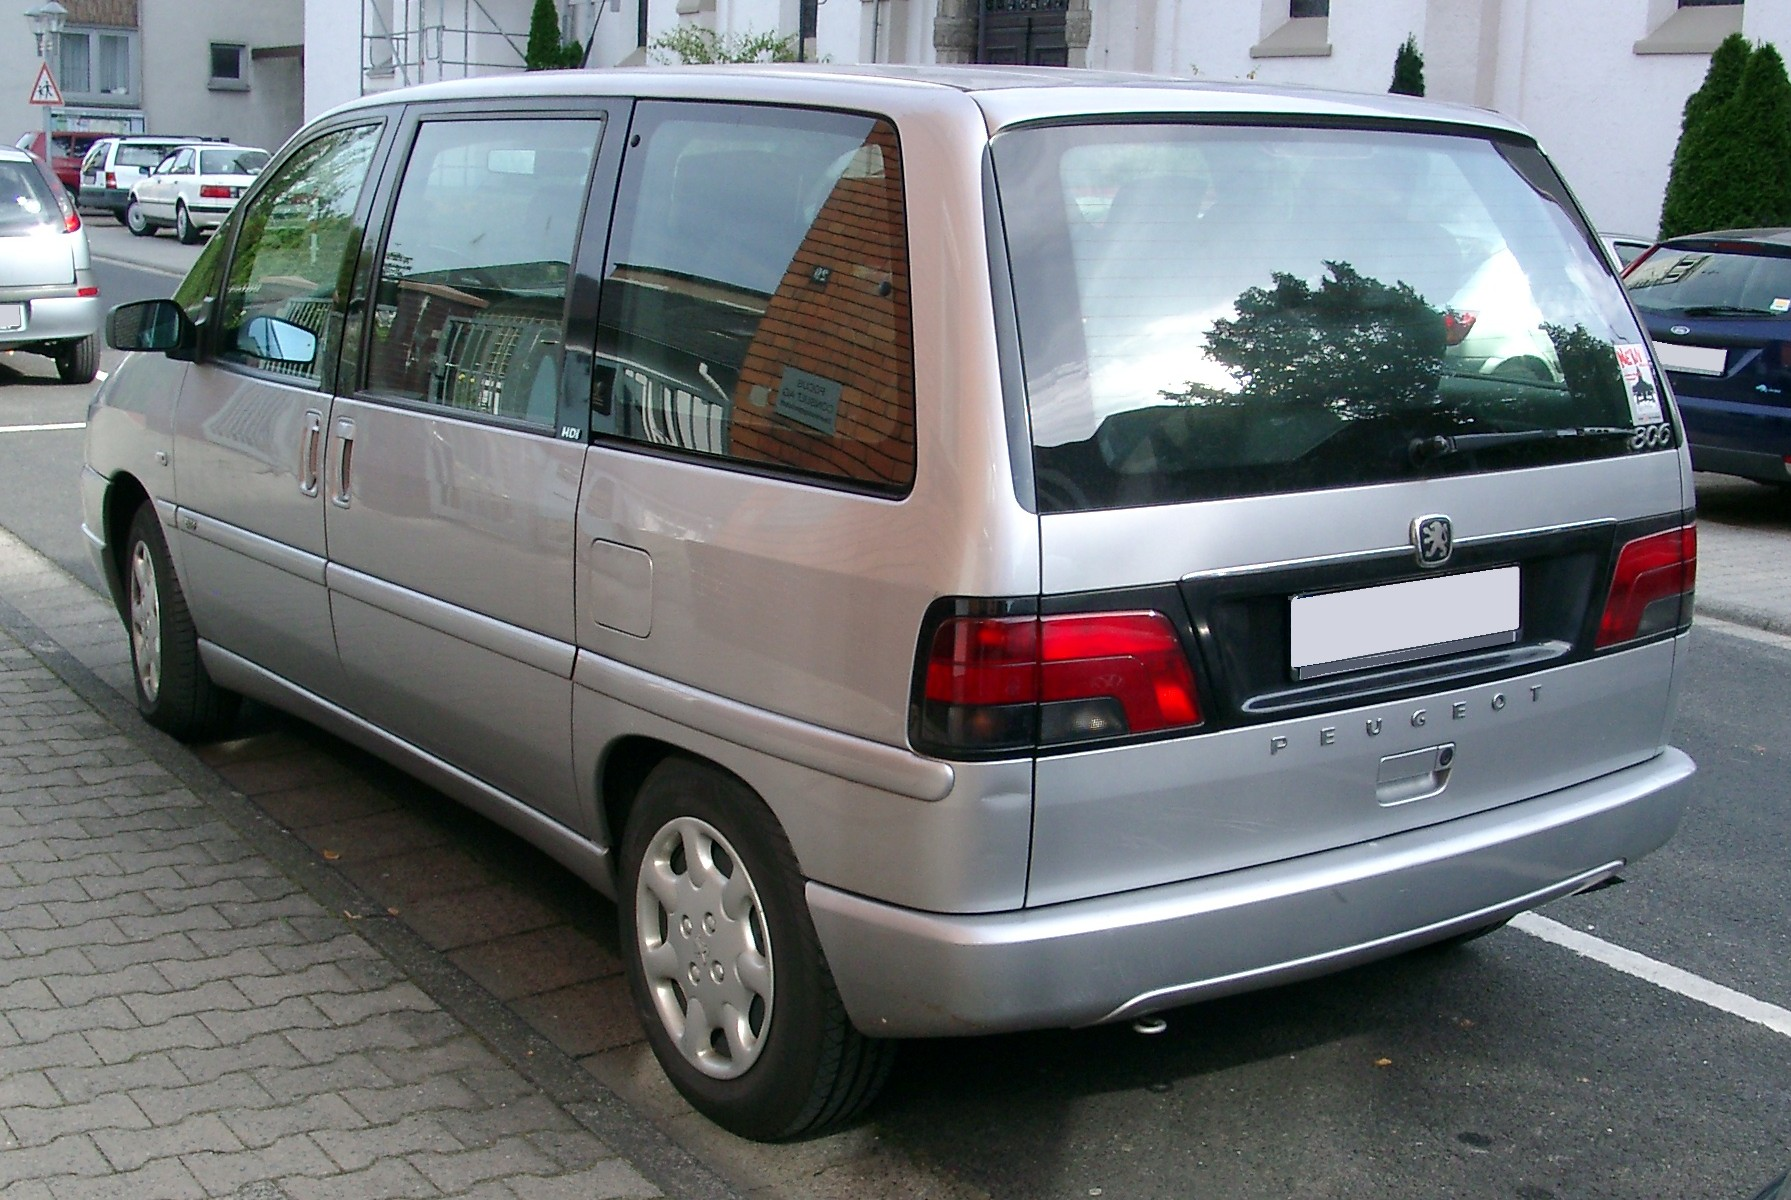 Eurovans - Wikipedia, the free encyclopedia